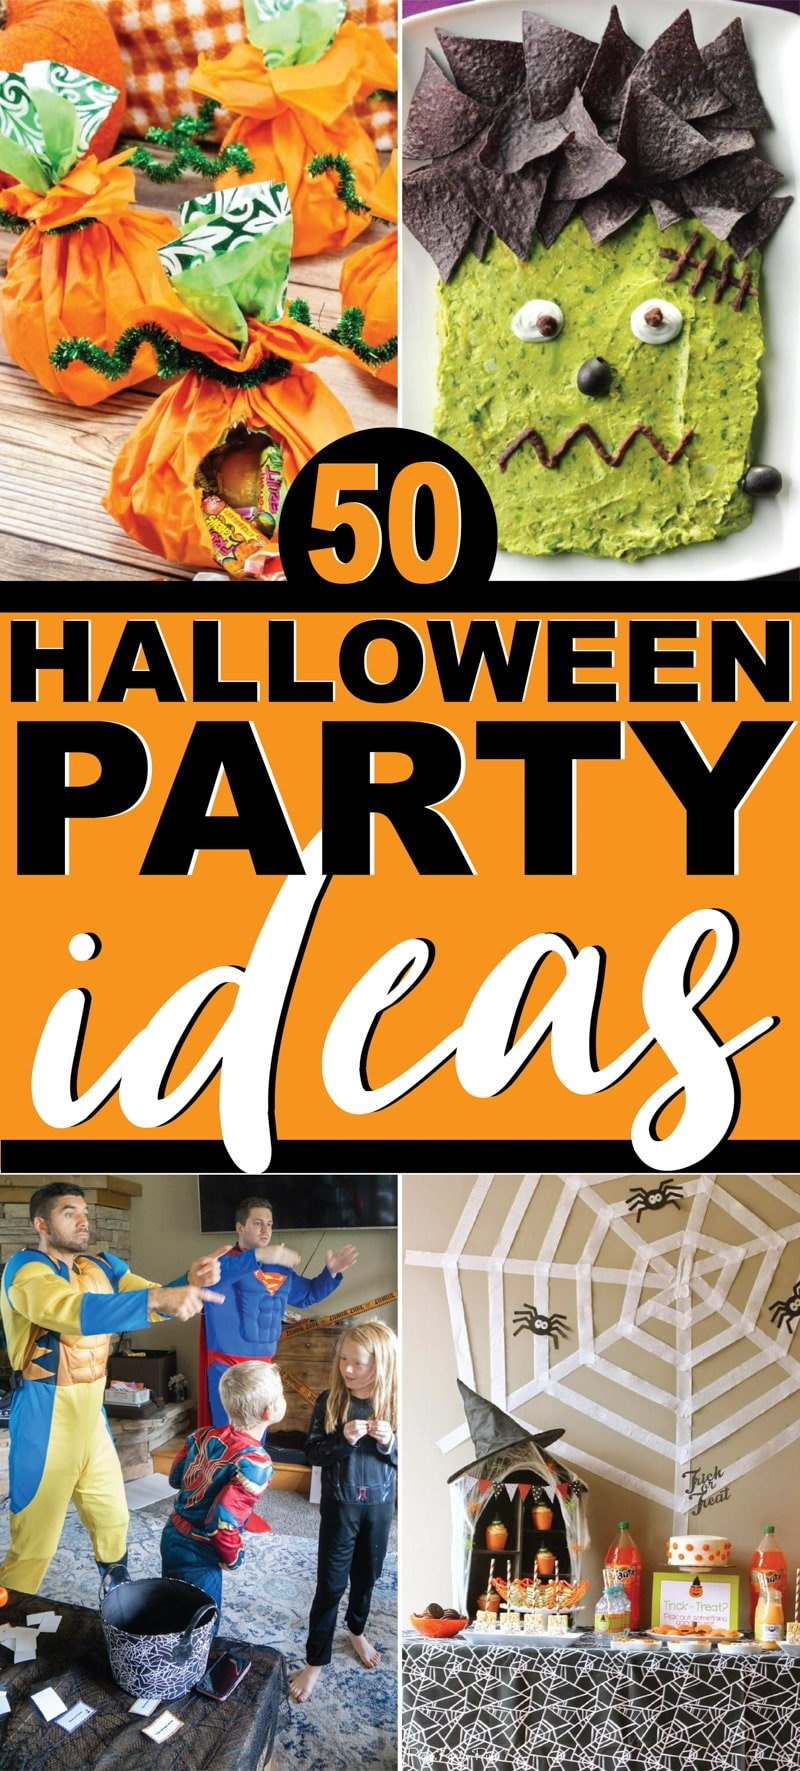 The best collection of Halloween party ideas for all ages - adults, kids, and teens!